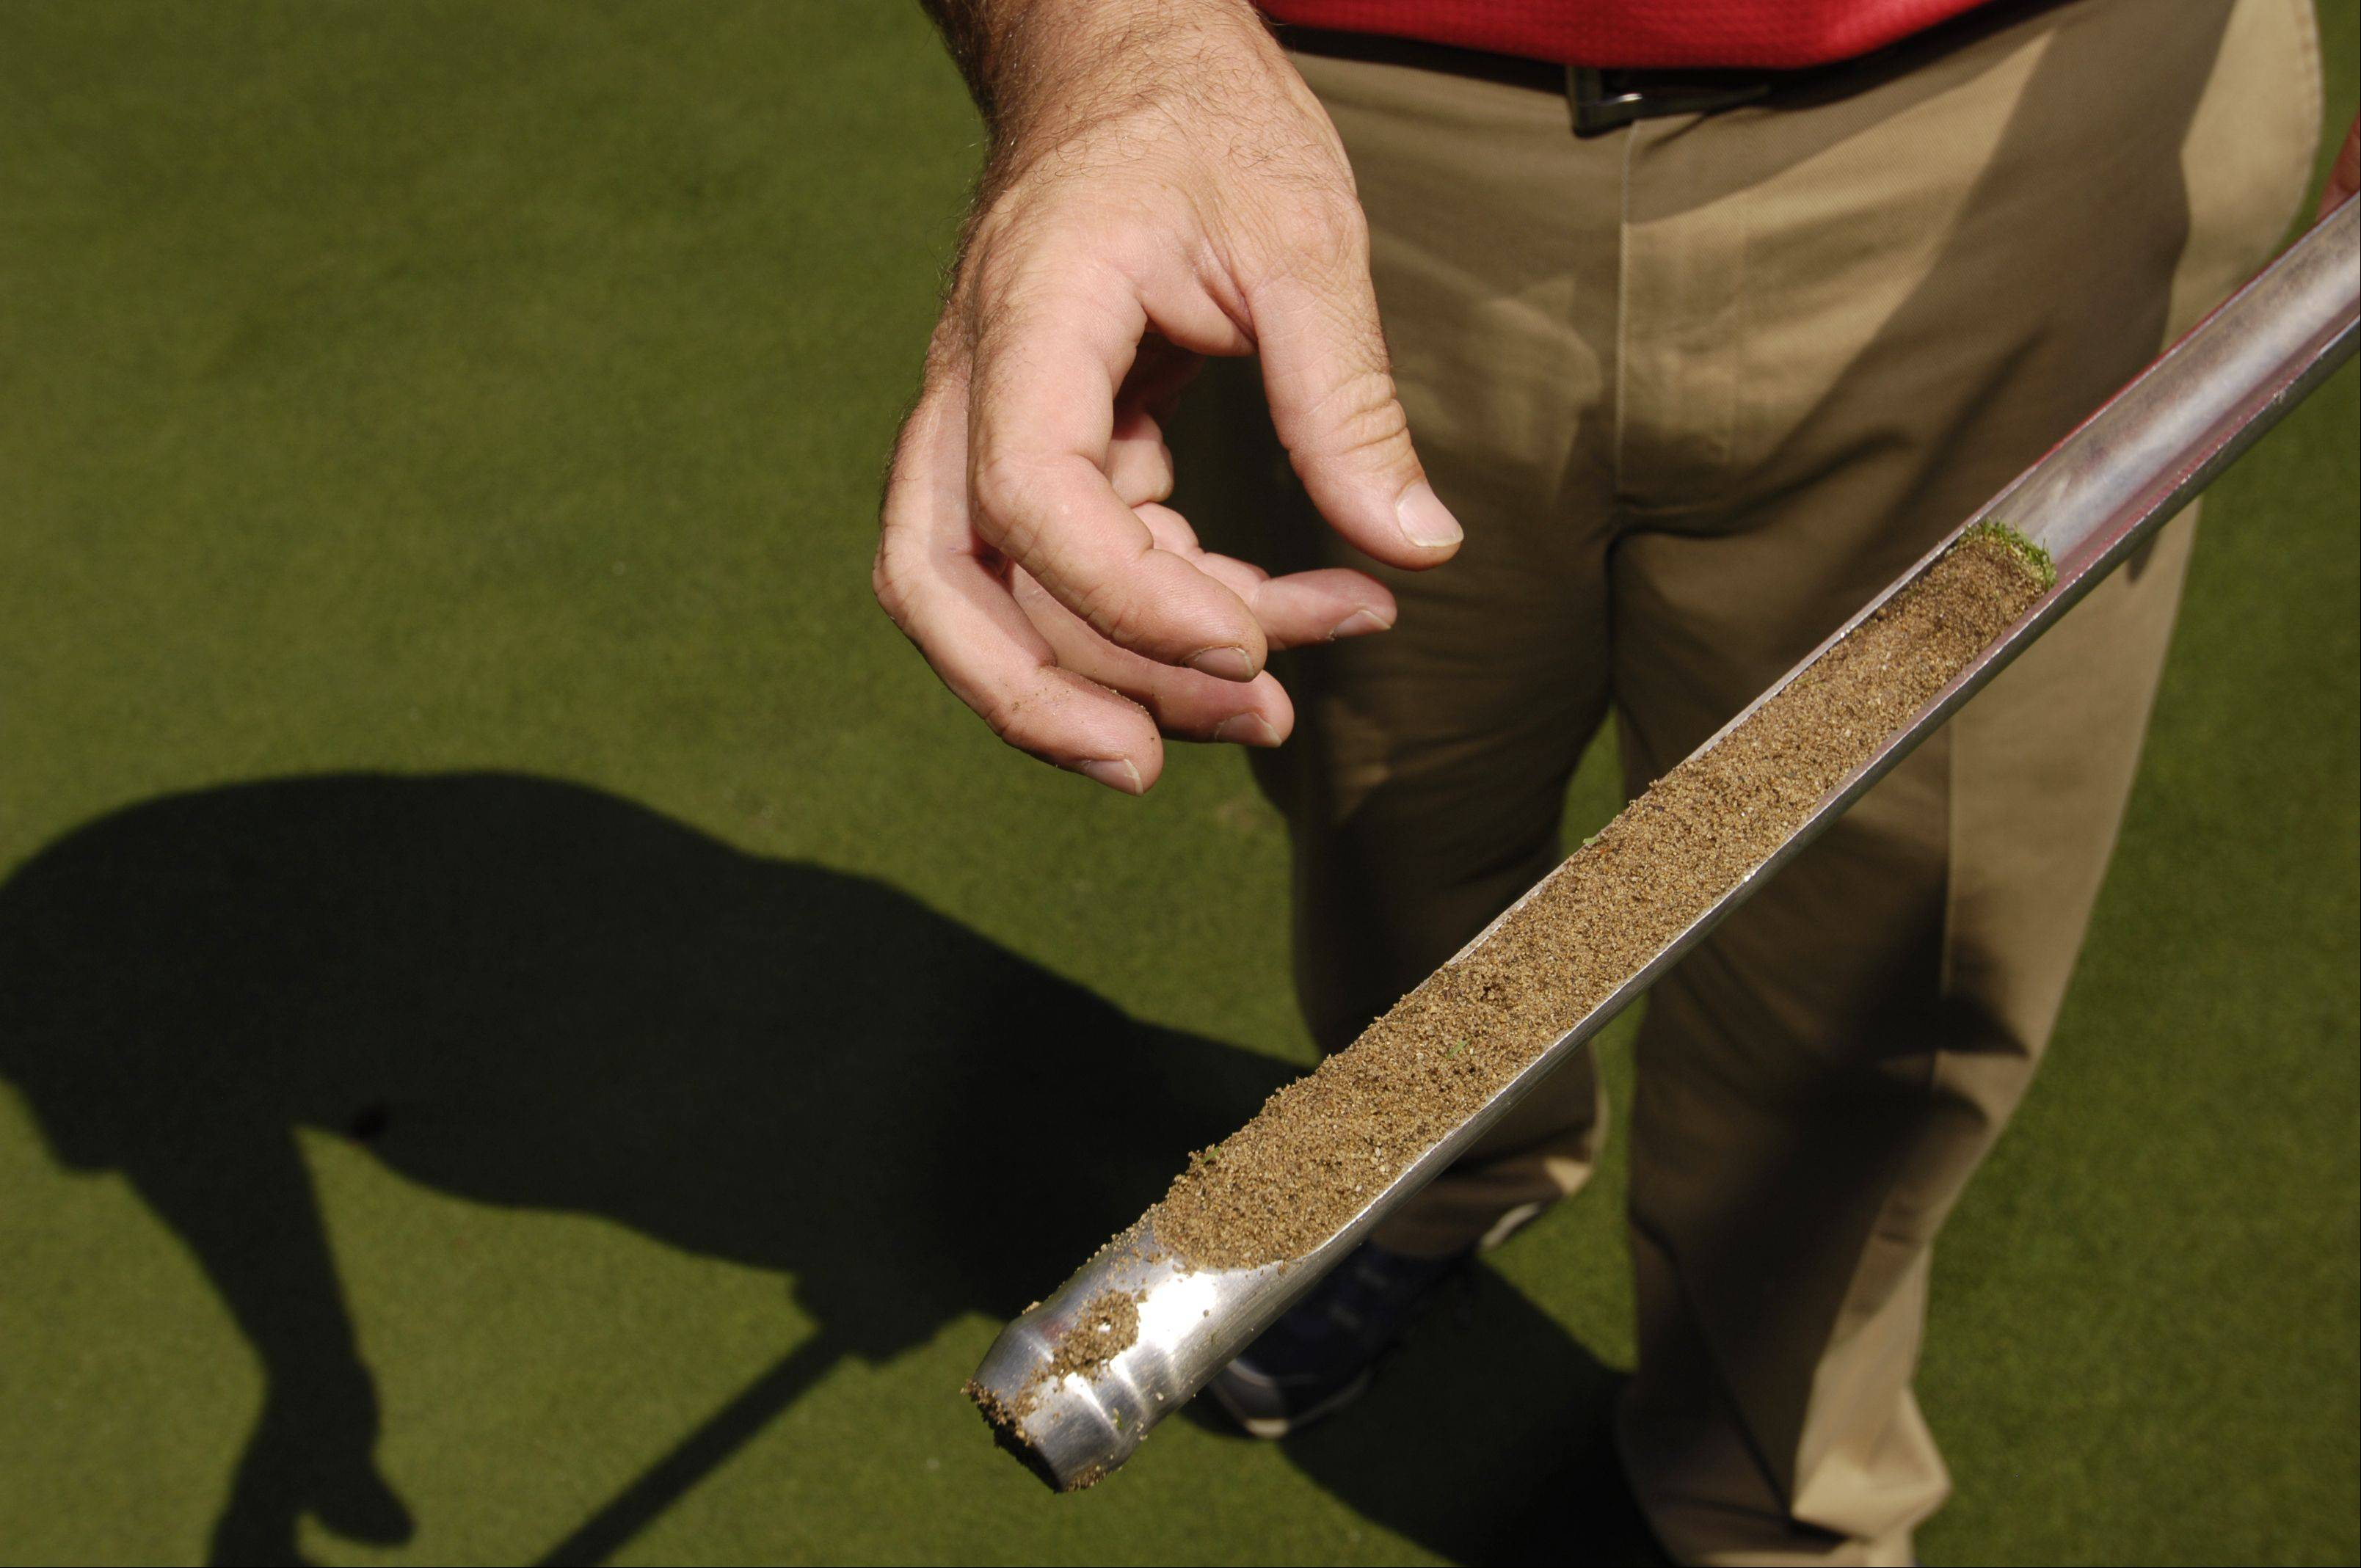 Curtis Tyrrell, director of golf course operations at Medinah Country Club, checks out a core sample from one of the greens.